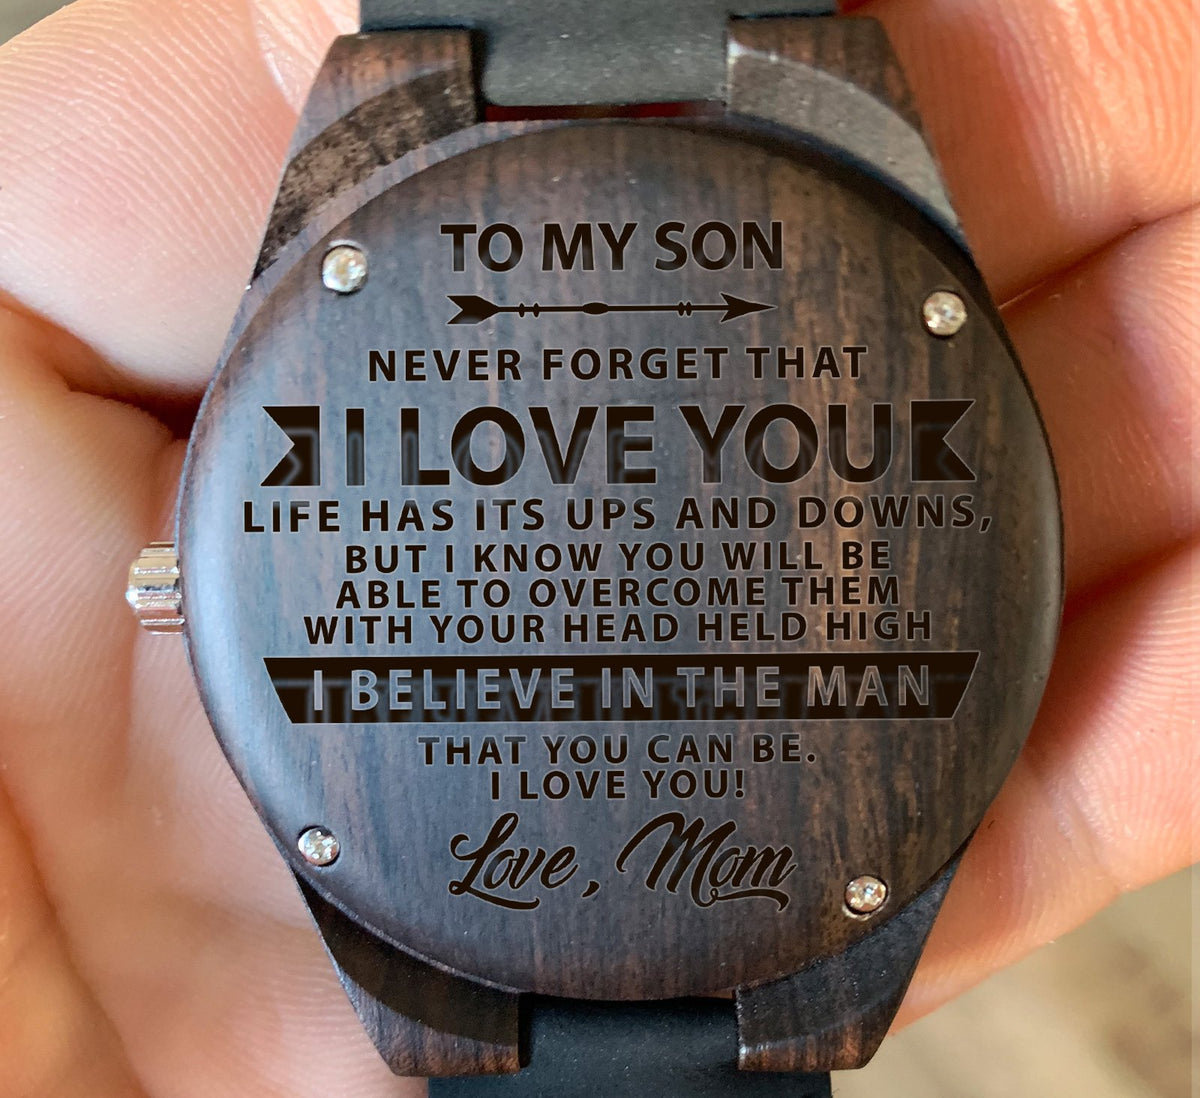 To My Son - I Believe in the Man That You Can Be. I LOVE YOU! - Wooden Watch